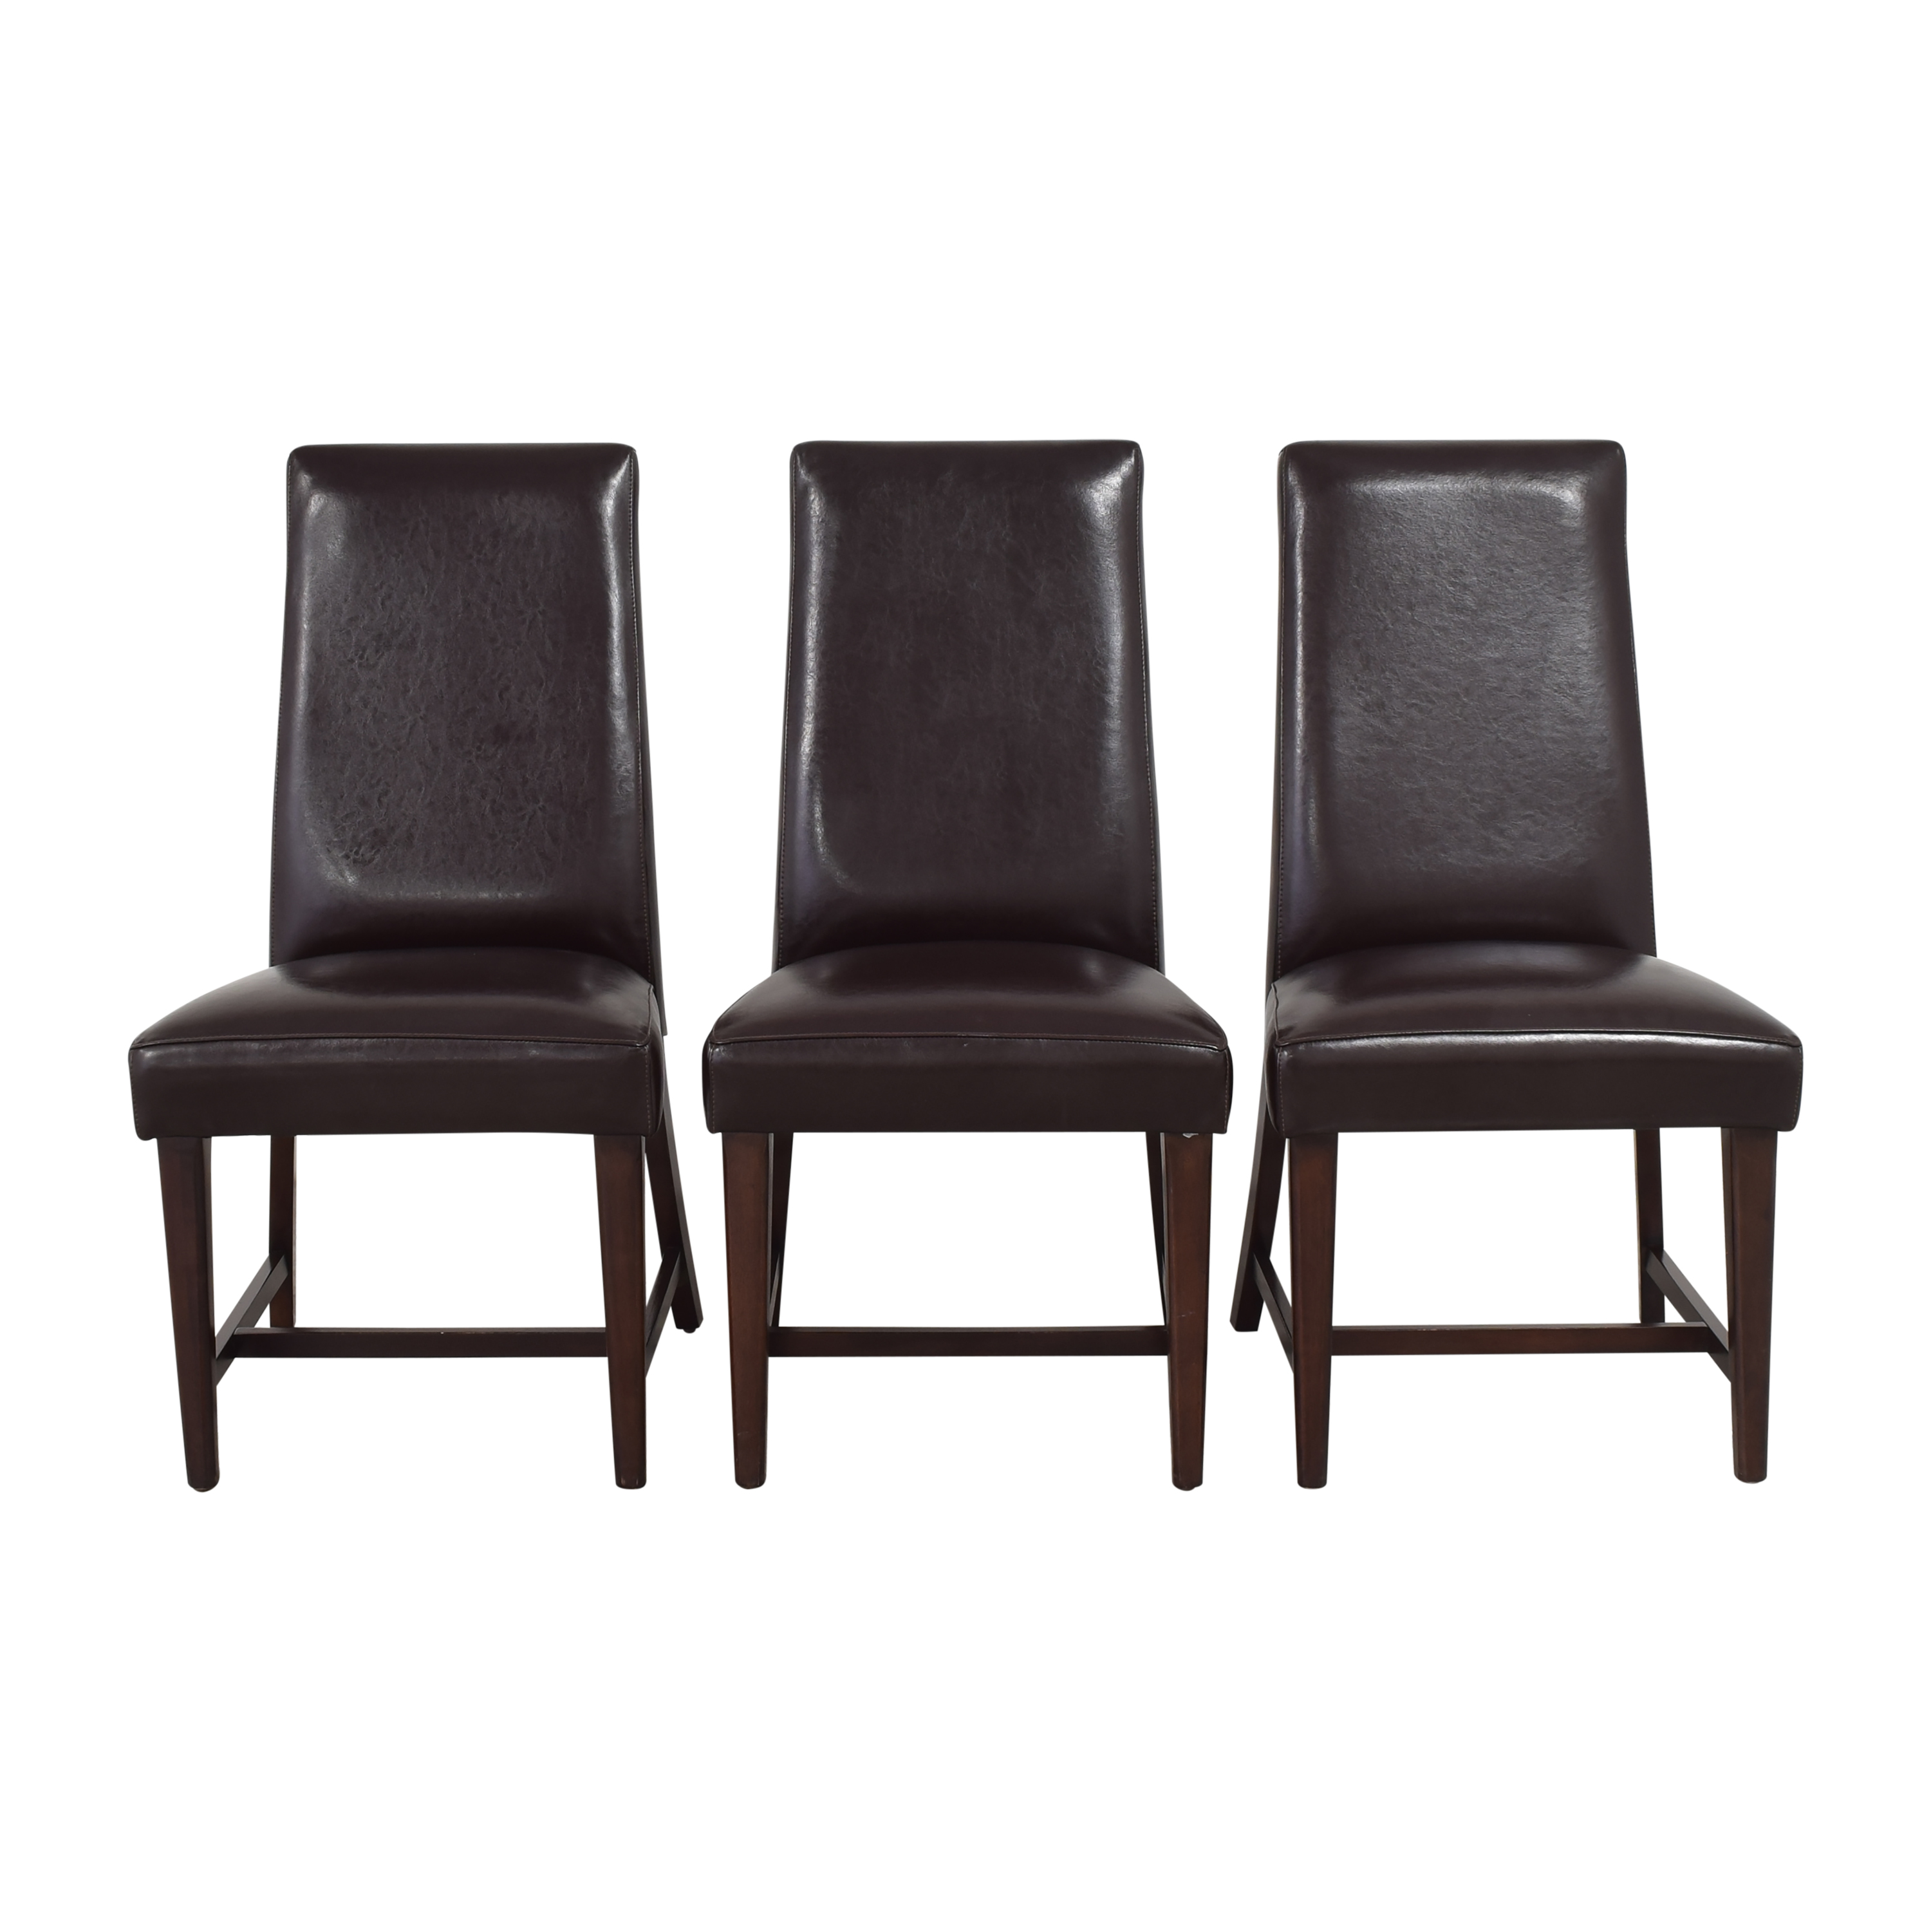 Shermag High Back Dining Chairs sale